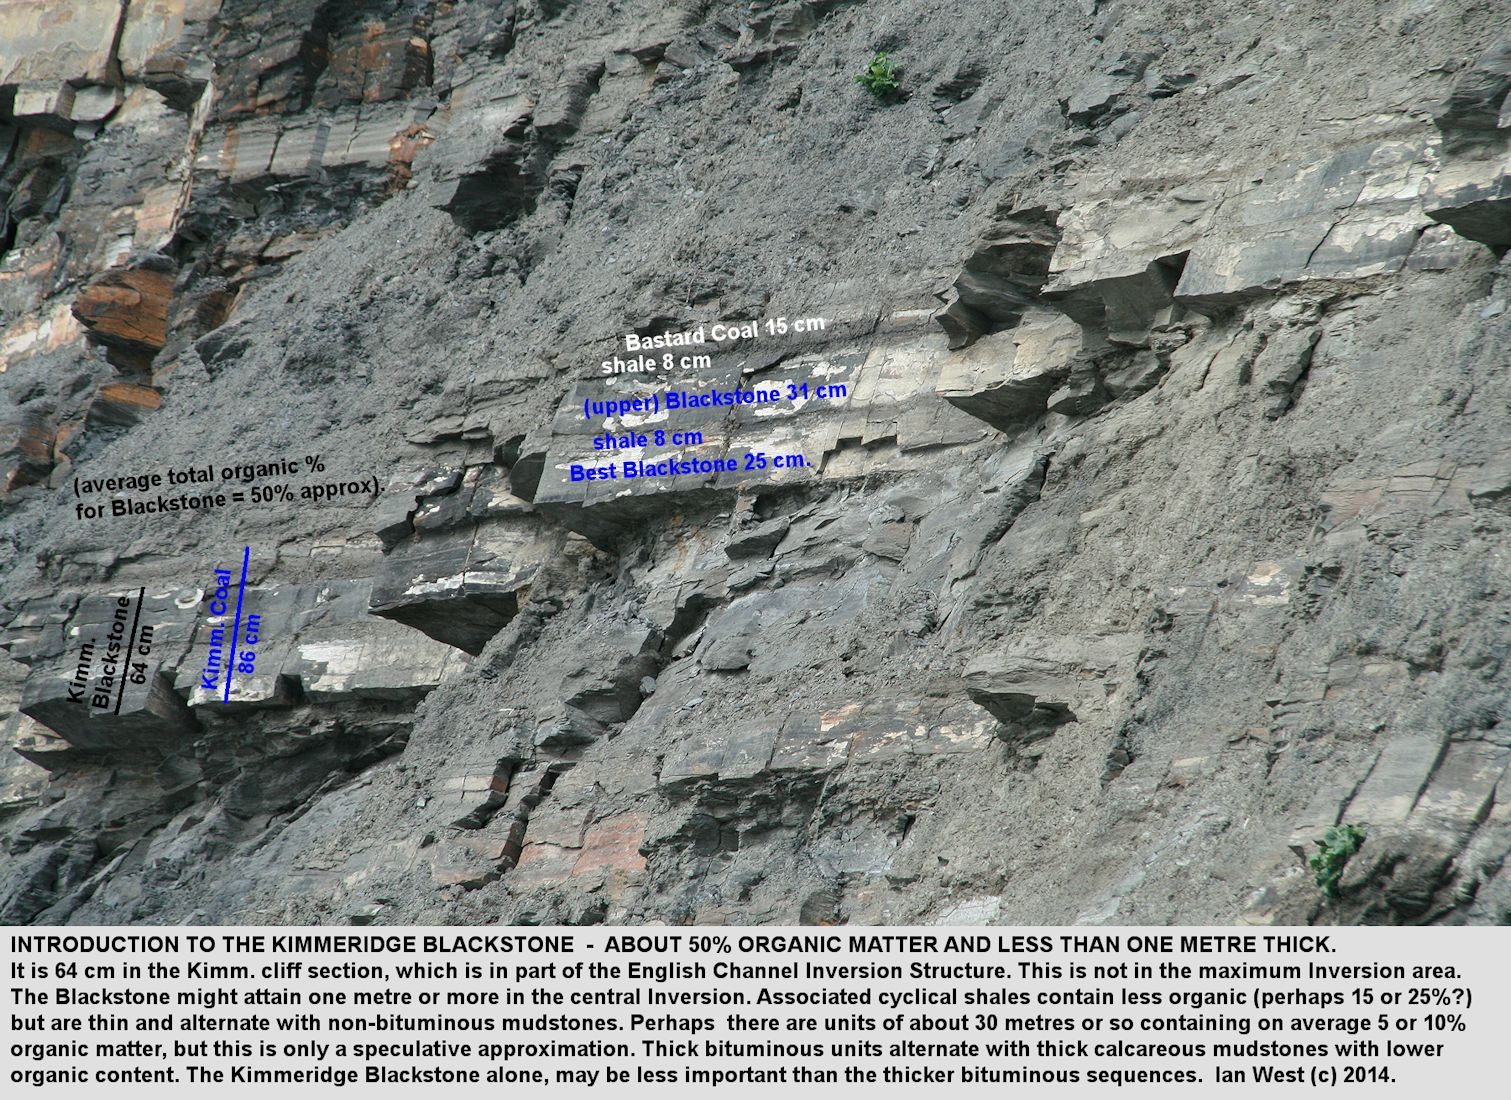 Thicknesses of the Kimmeridge Coal and the Kimmeridge Blackstone or oil shale, in the Kimmeridge Clay, near Clavell's Hard,  Kimmeridge, Dorset, with comments on oil source rock potential and approximate percentages